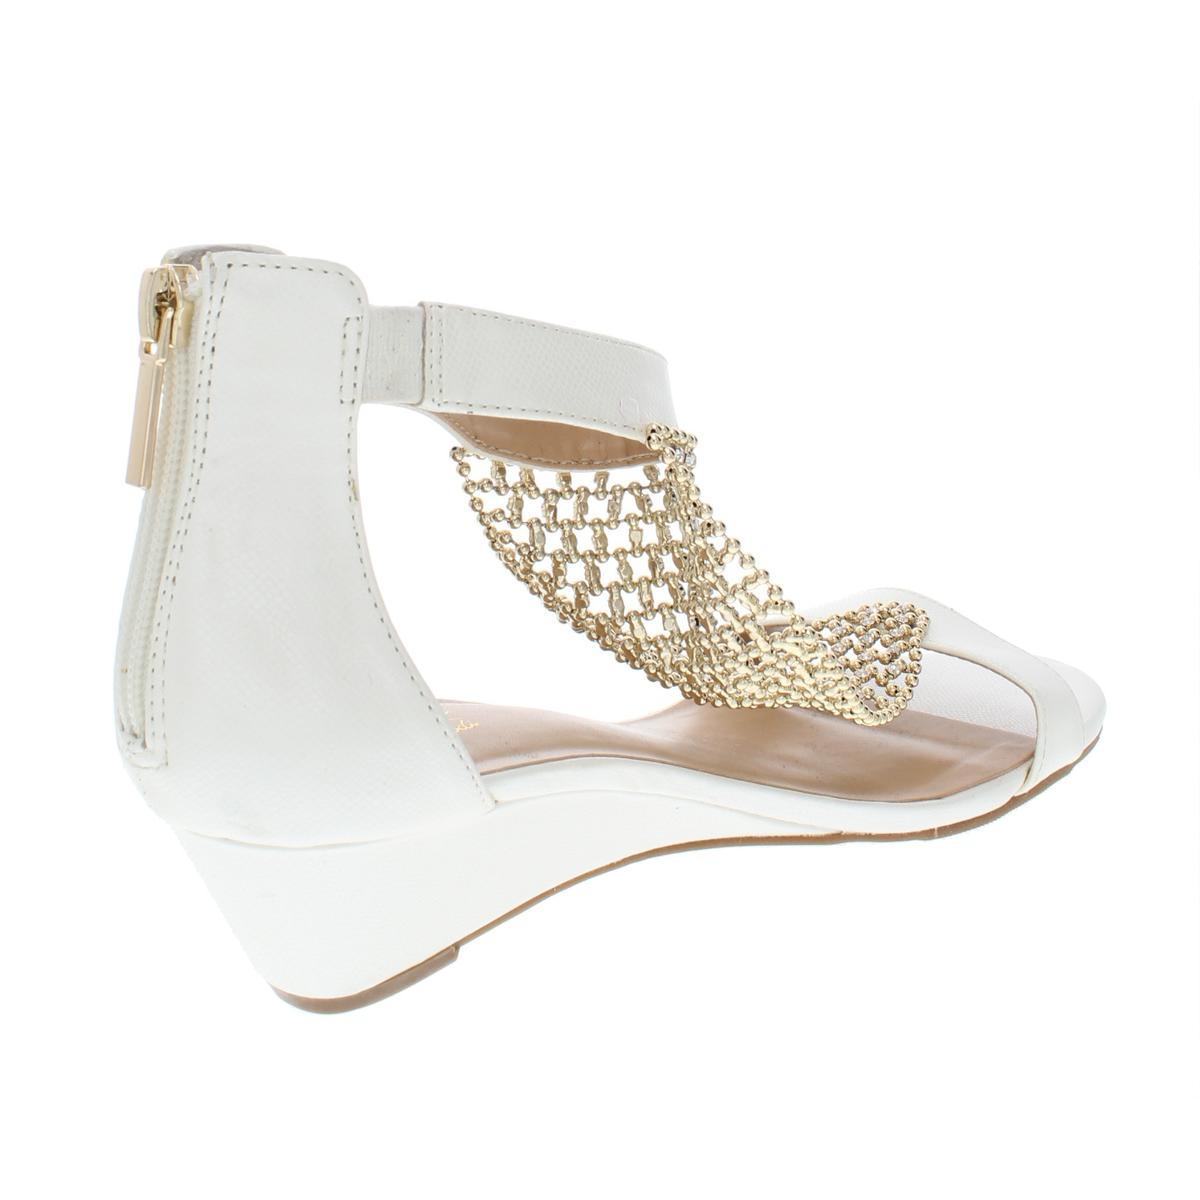 Thalia-Sodi-Womens-Tibby-T-Strap-Embellished-Wedge-Sandals-Shoes-BHFO-5842 thumbnail 10